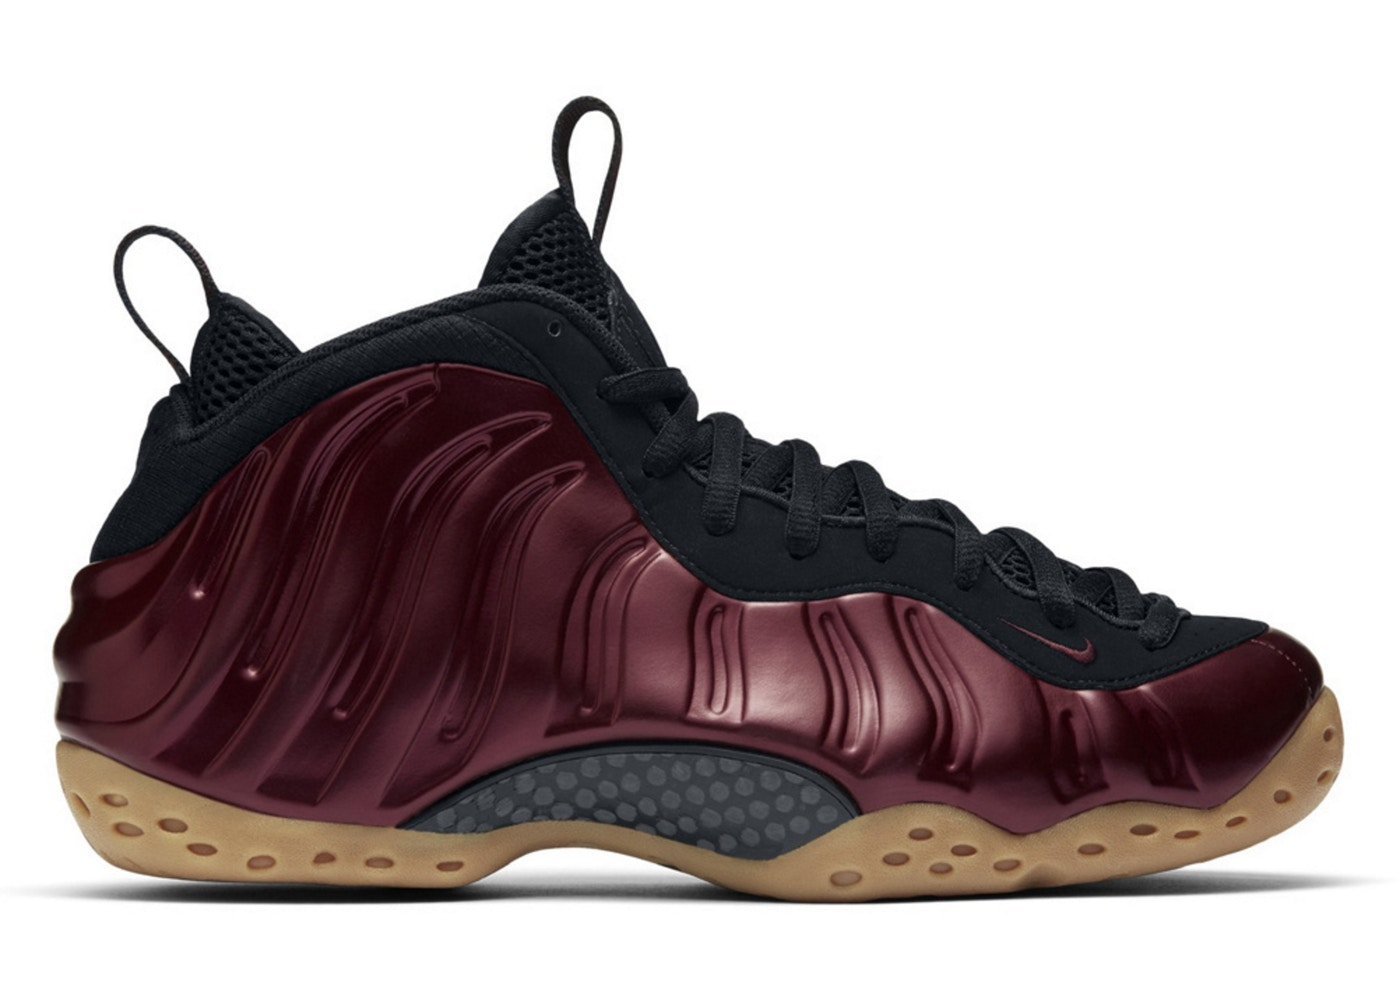 750860182463e Air Foamposite One Maroon - 314996-601